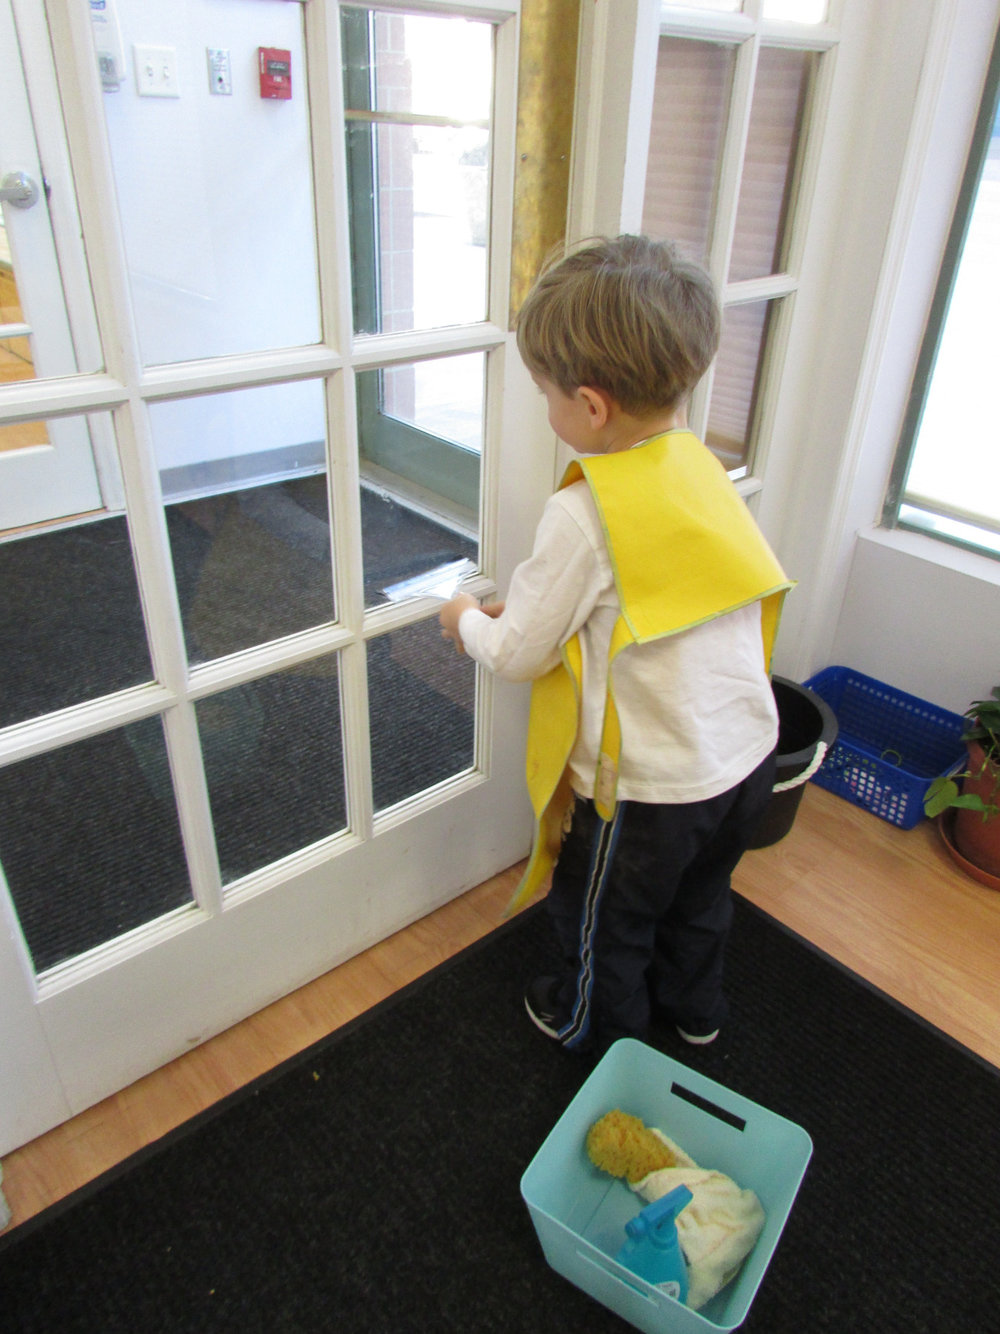 Window washing is a new and popular work in the Primary 3 classroom. The students enjoy following each sequential step as they spray and wipe the glass and help to keep their classroom clean. This work helps to develop their independence and concentration.